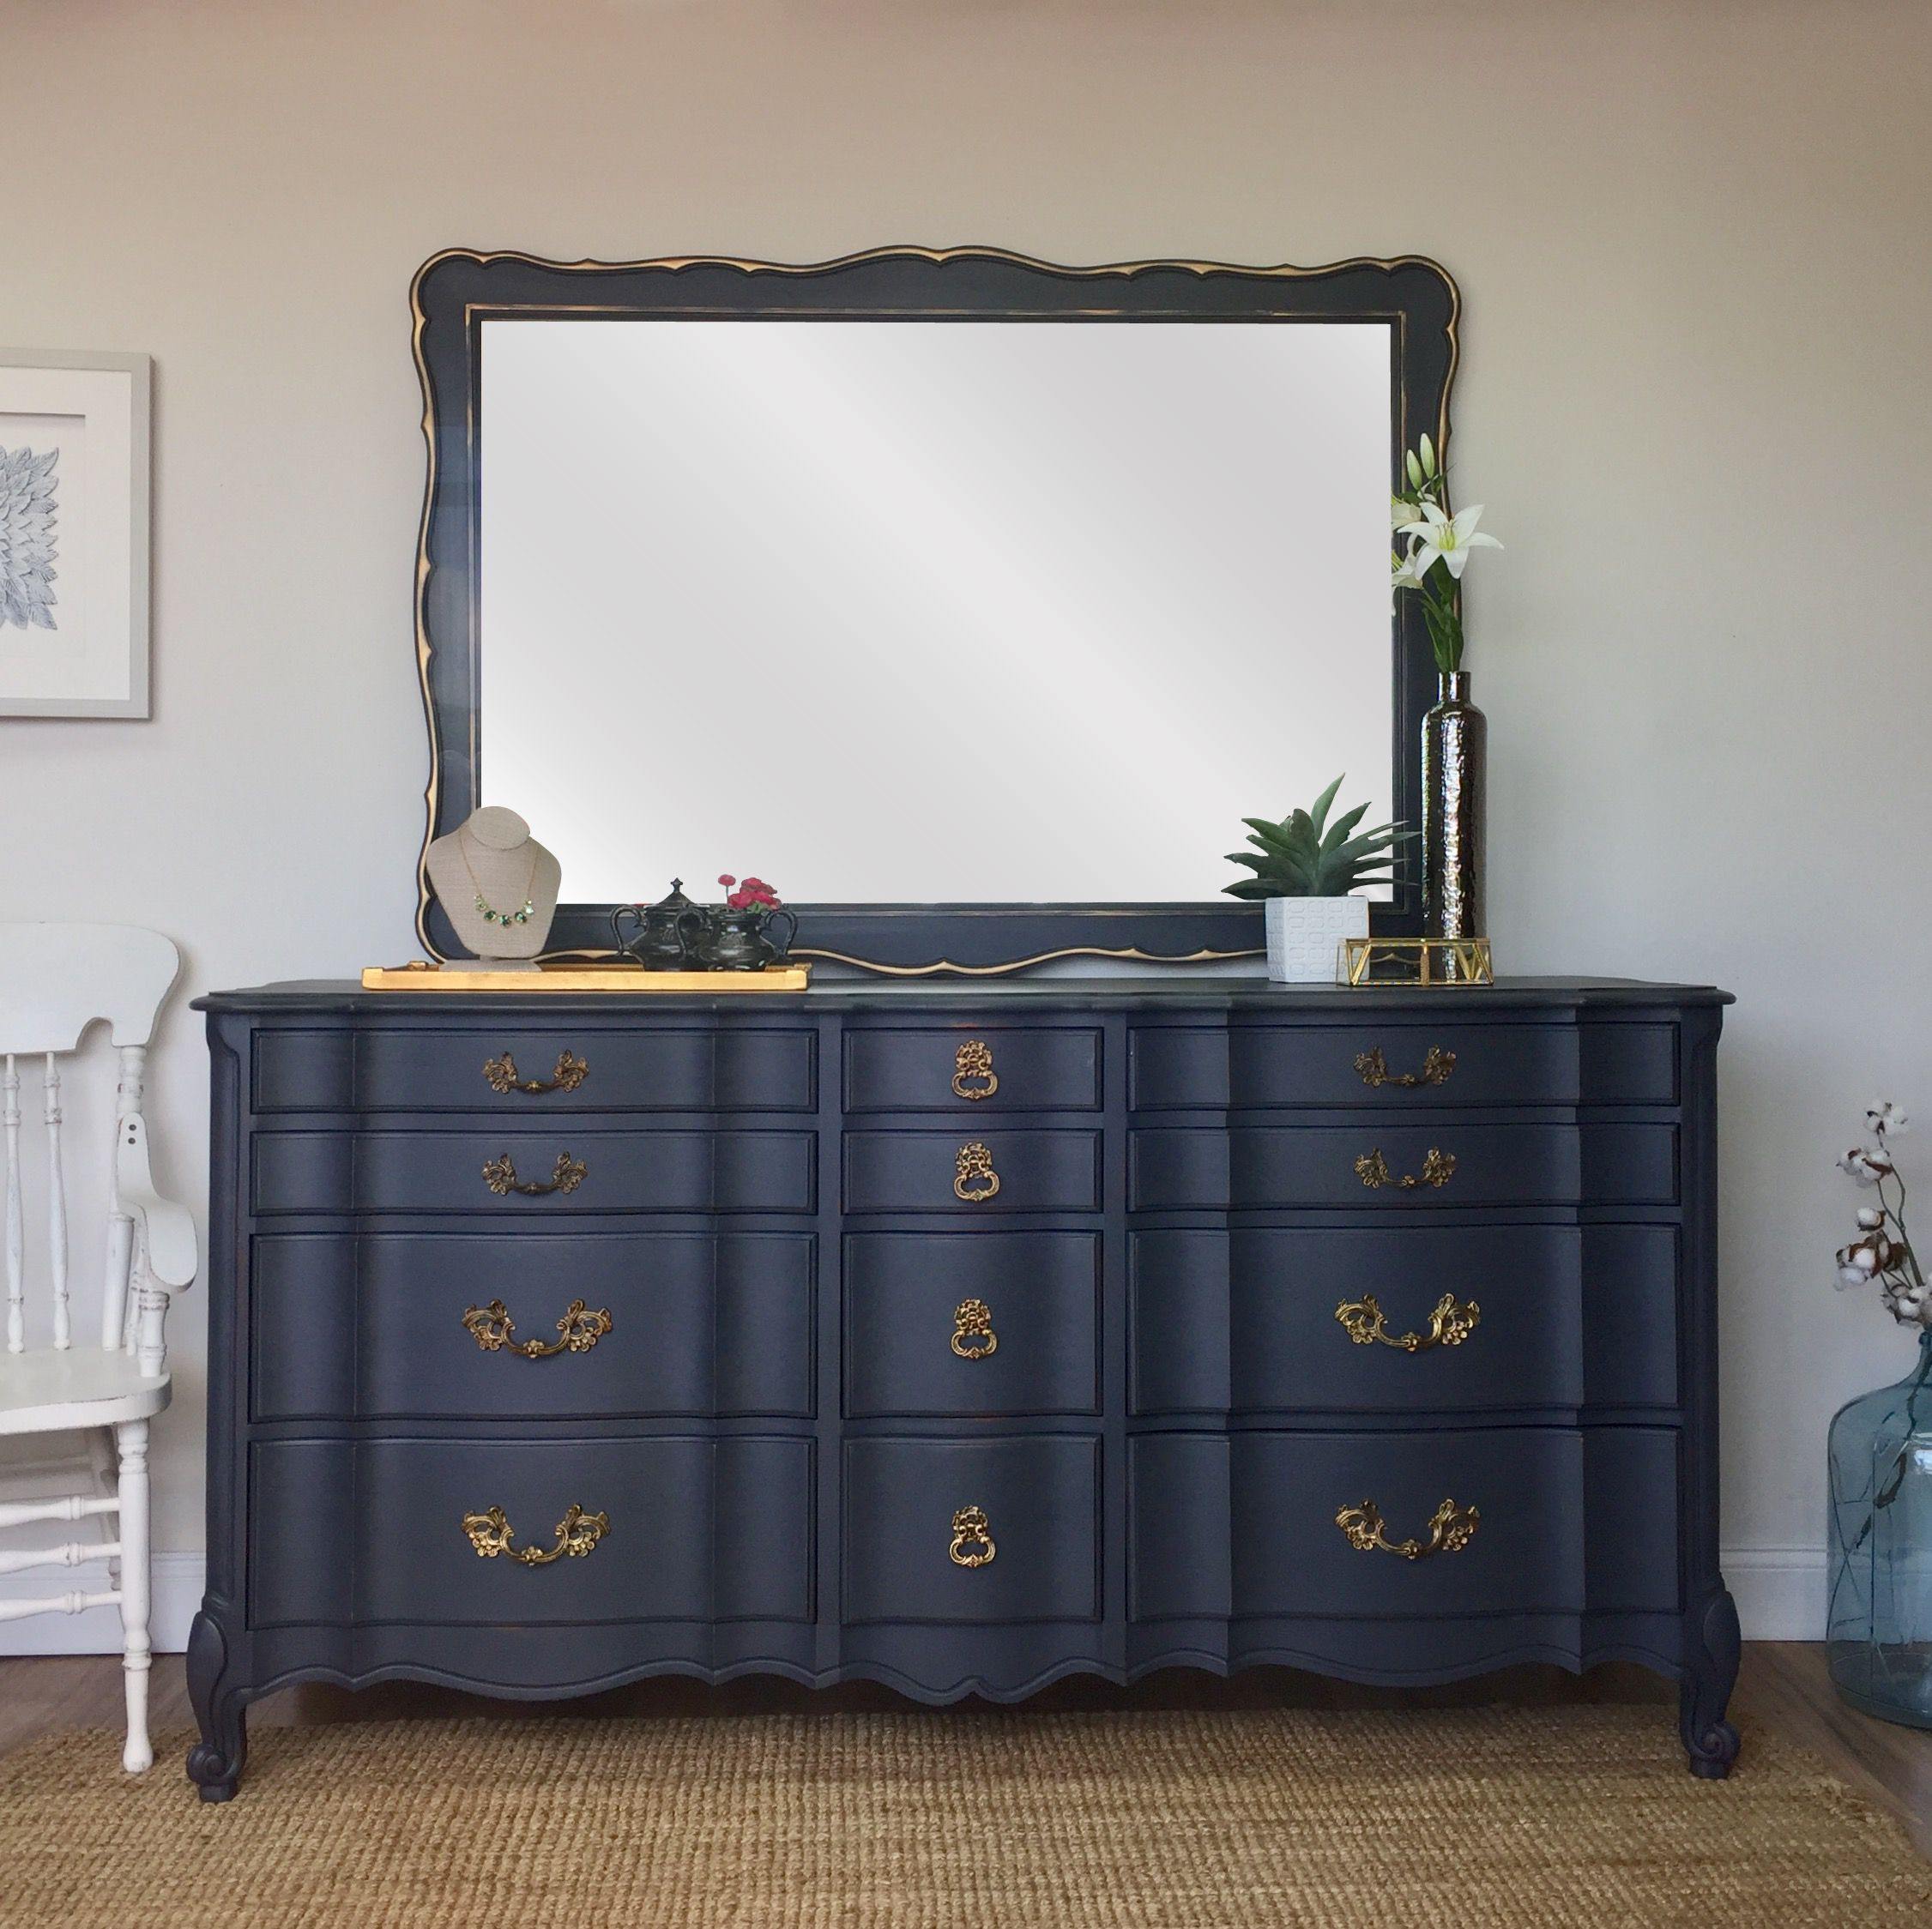 French Provincial Dresser Dresser with Mirror, Mid